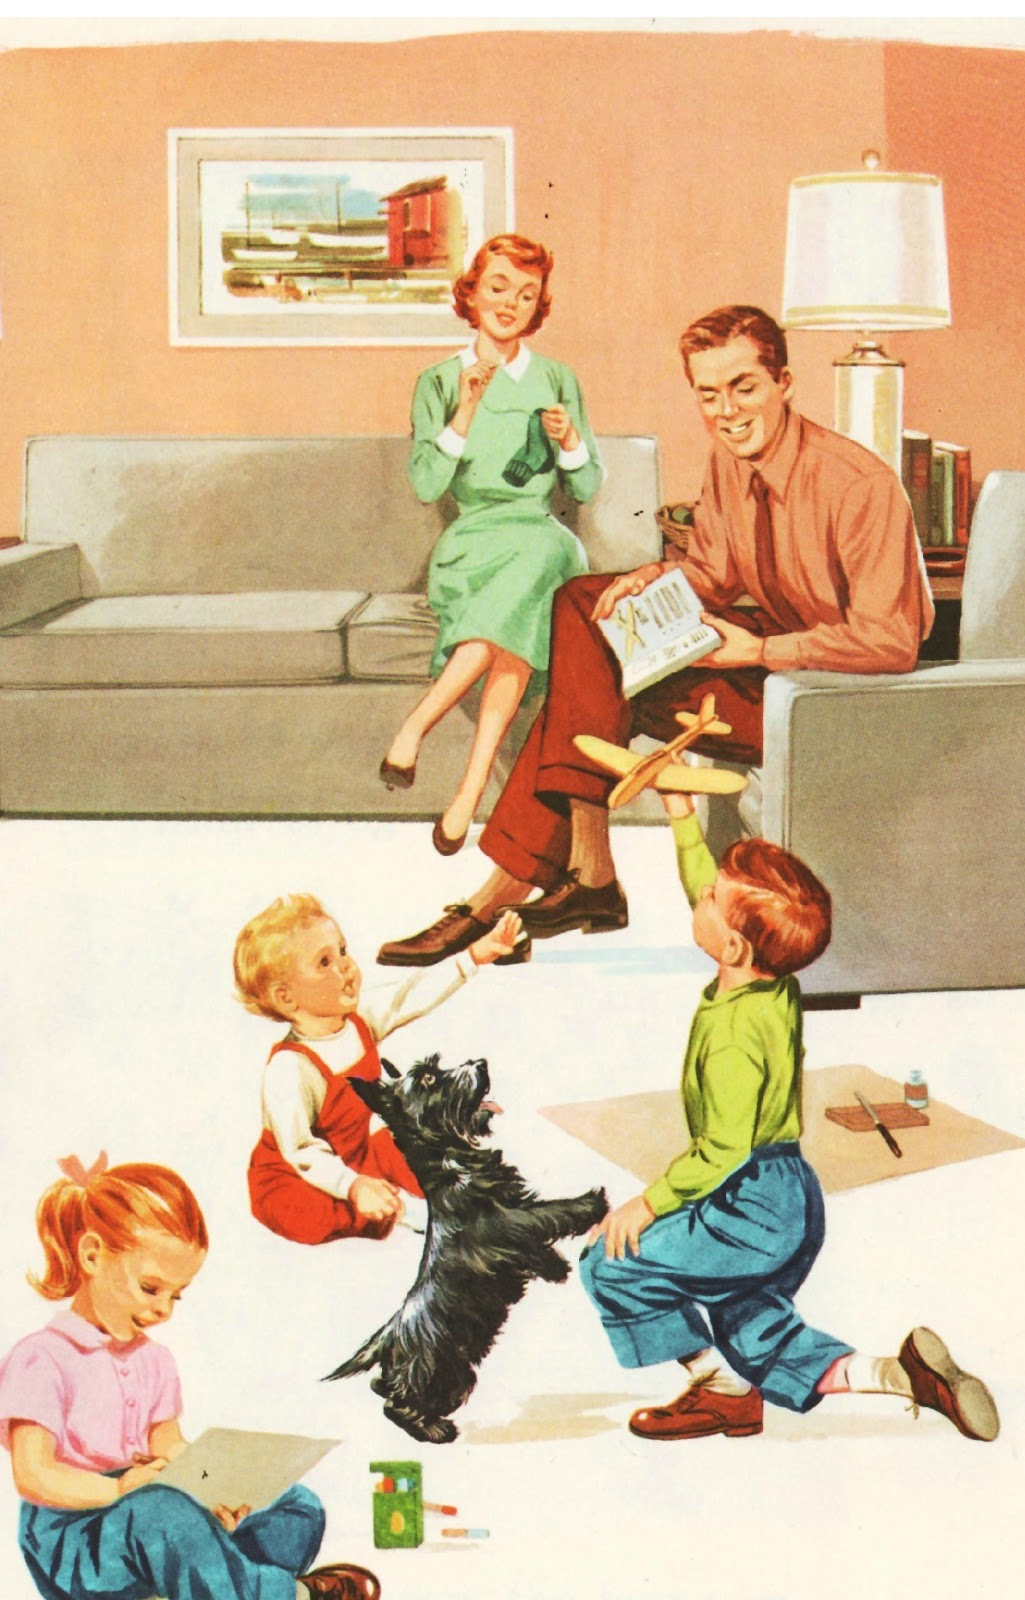 Vintage housewifes on pinterest vintage ads housewife for Classic 50s housewife